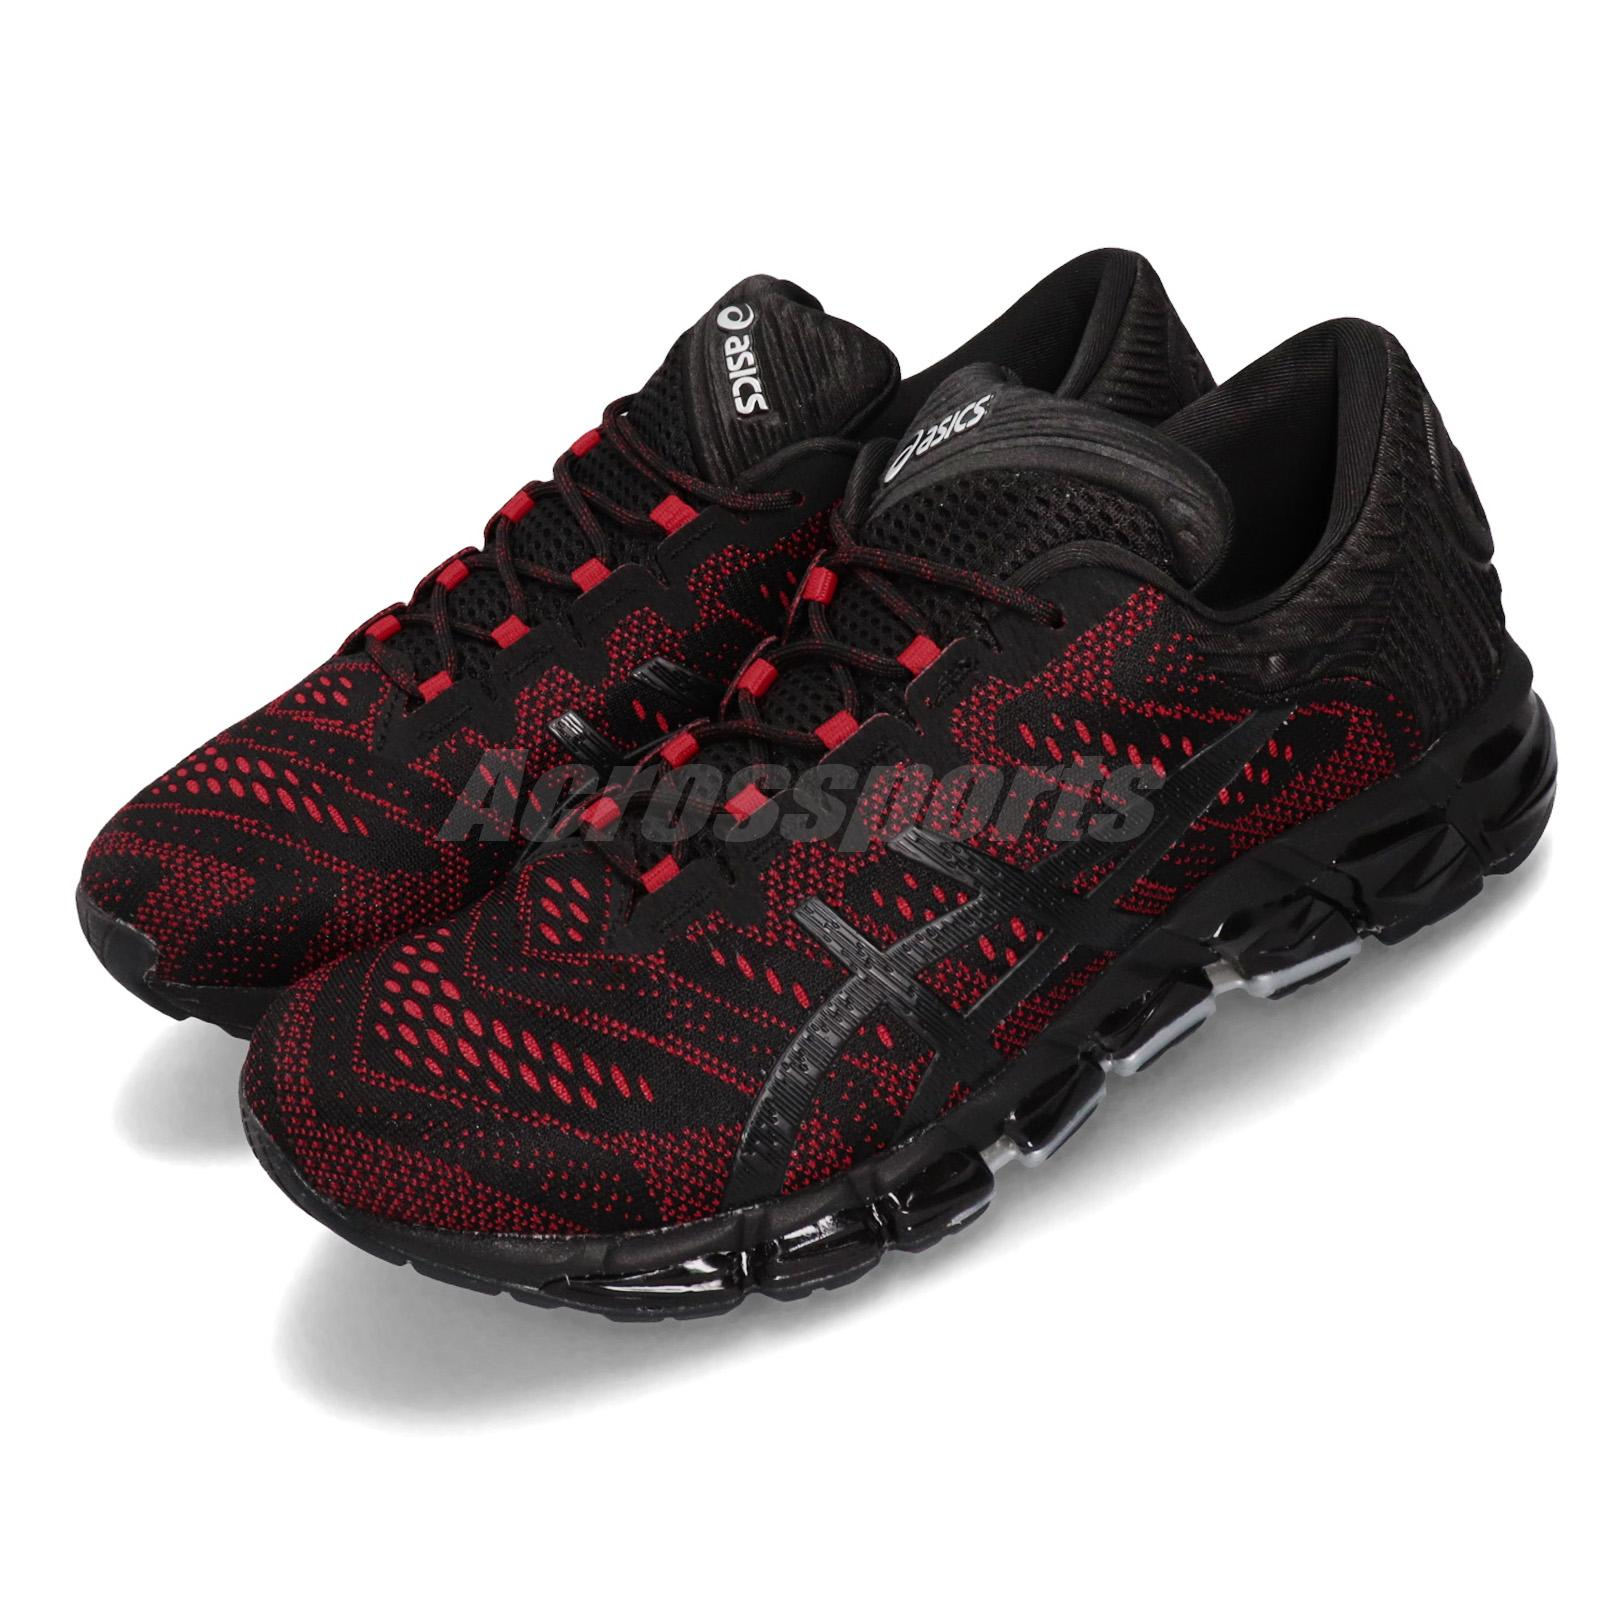 check out bc3d4 2412d Details about Asics Gel-Quantum 360 5 JCQ Black Classic Red Men Running  Shoes 1021A153-001